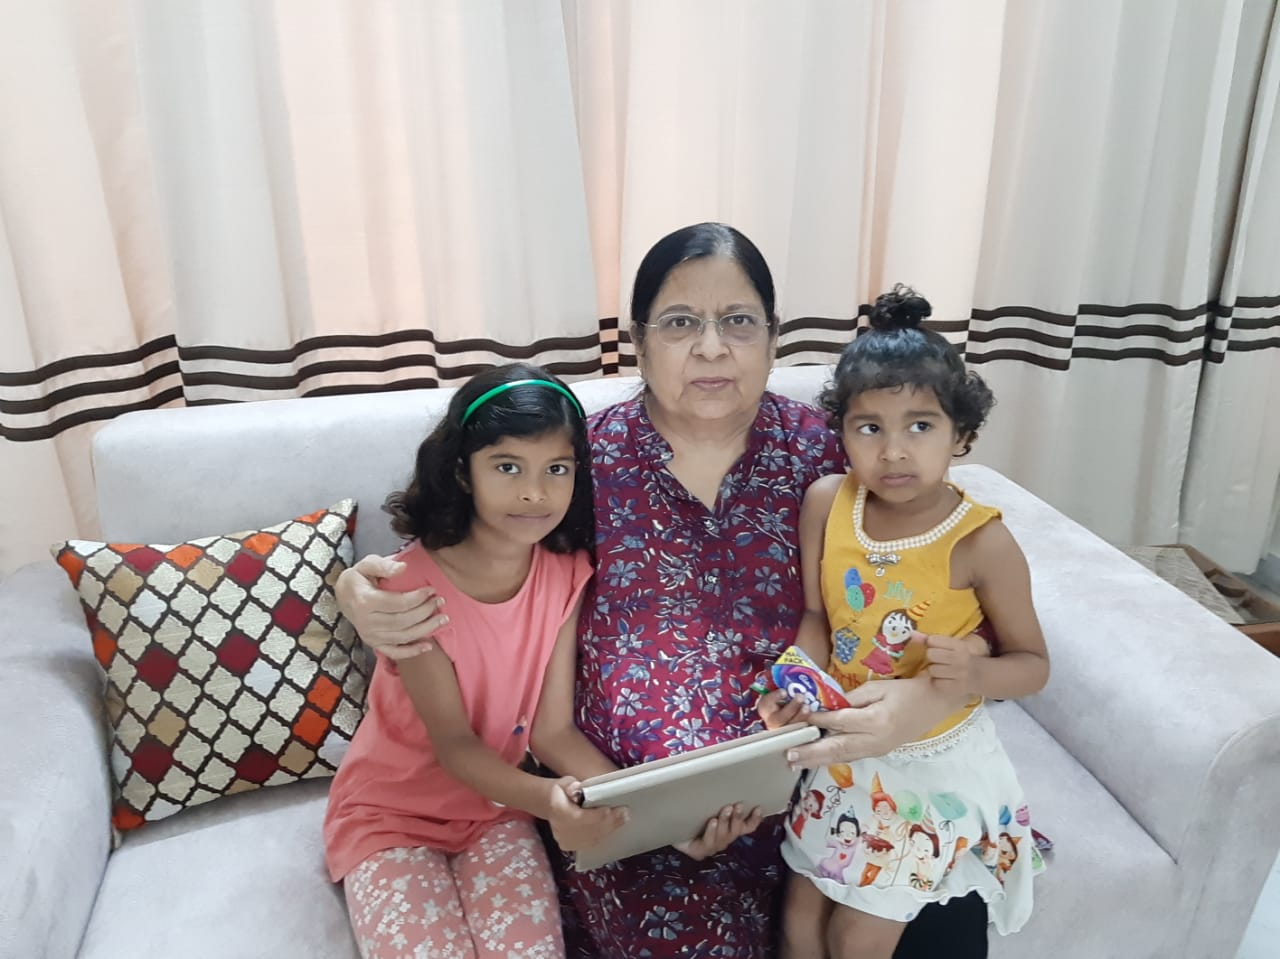 Being mentally fit amid Covid-19 is crucial, says 70-year-old Manju Singh